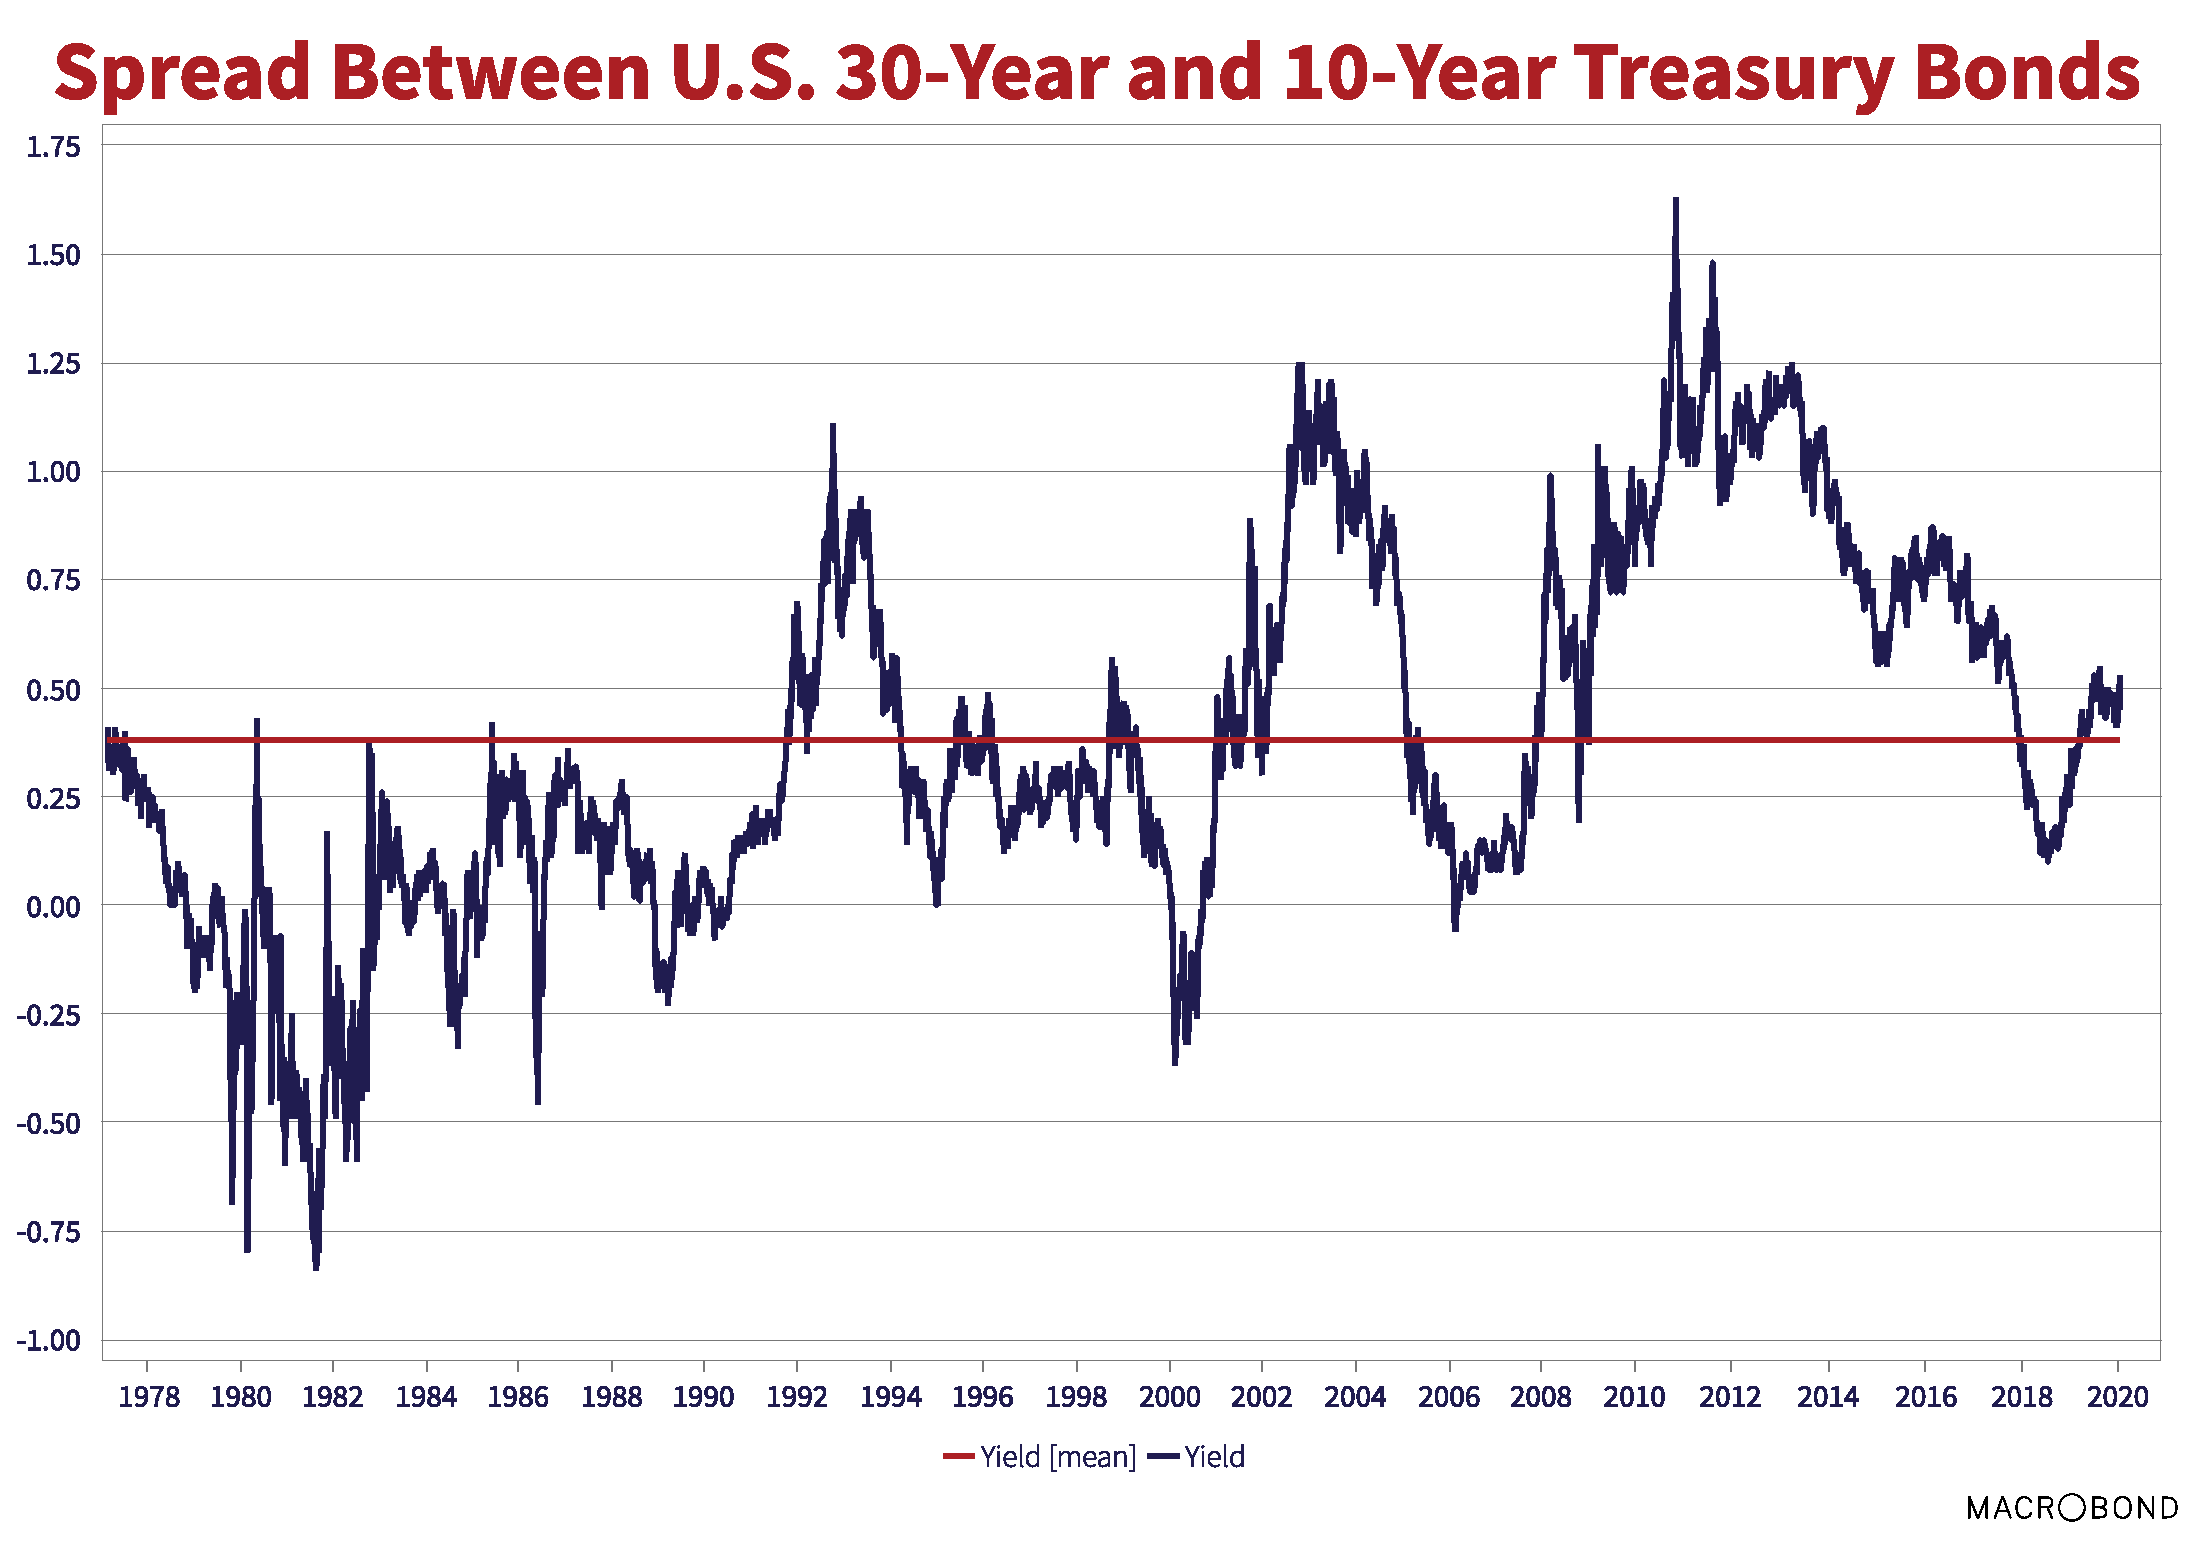 Spread between U.S 30-Year and 10-Year Treasury Bonds. Source: Macrobond. Yield (mean) line is drawn at (0, .30).